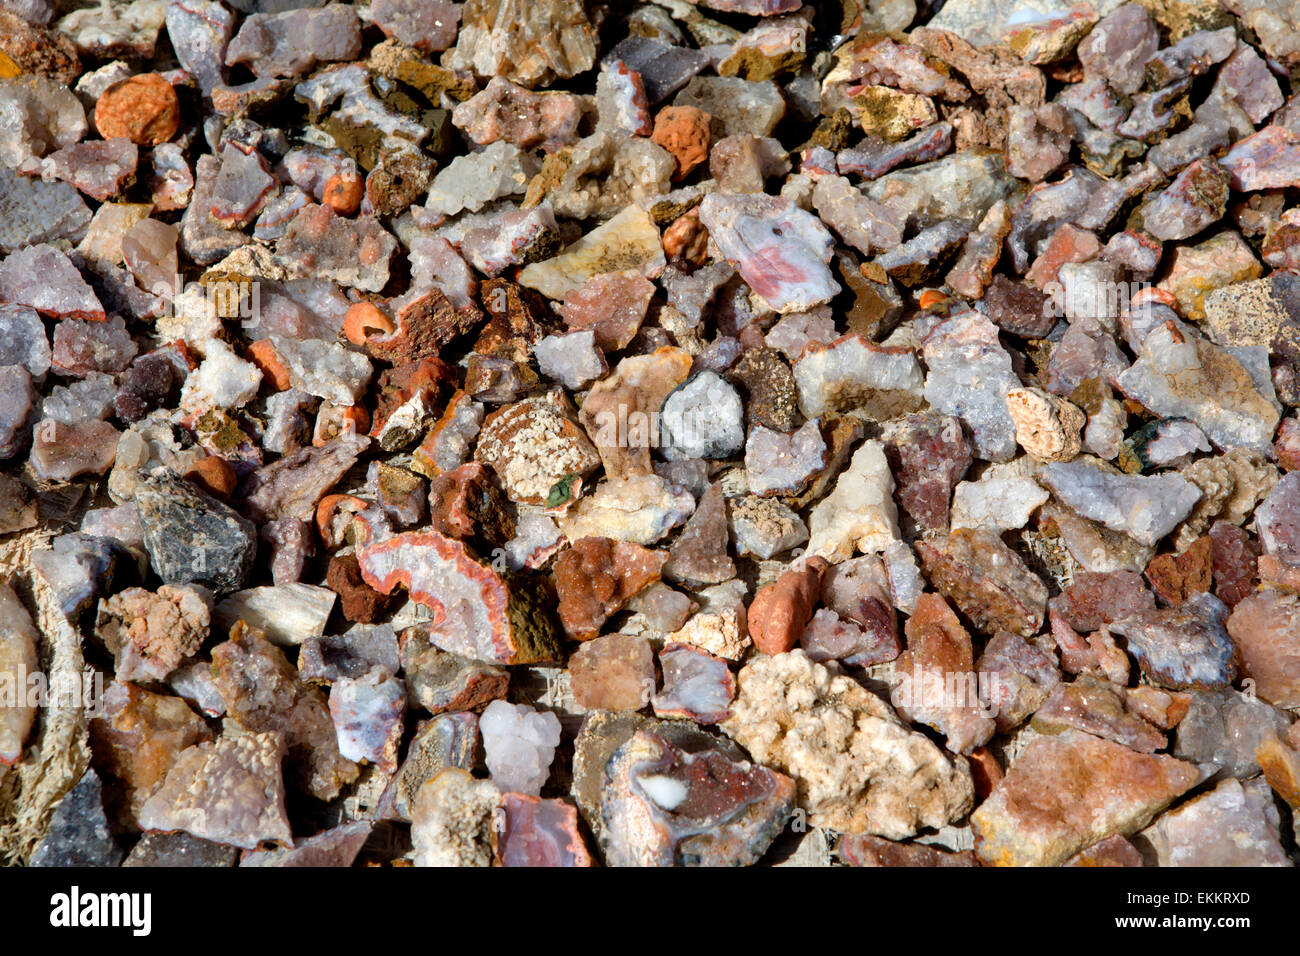 Geodes are geological secondary sedimentary structures which occur in sedimentary and certain volcanic rocks. Geodes - Stock Image